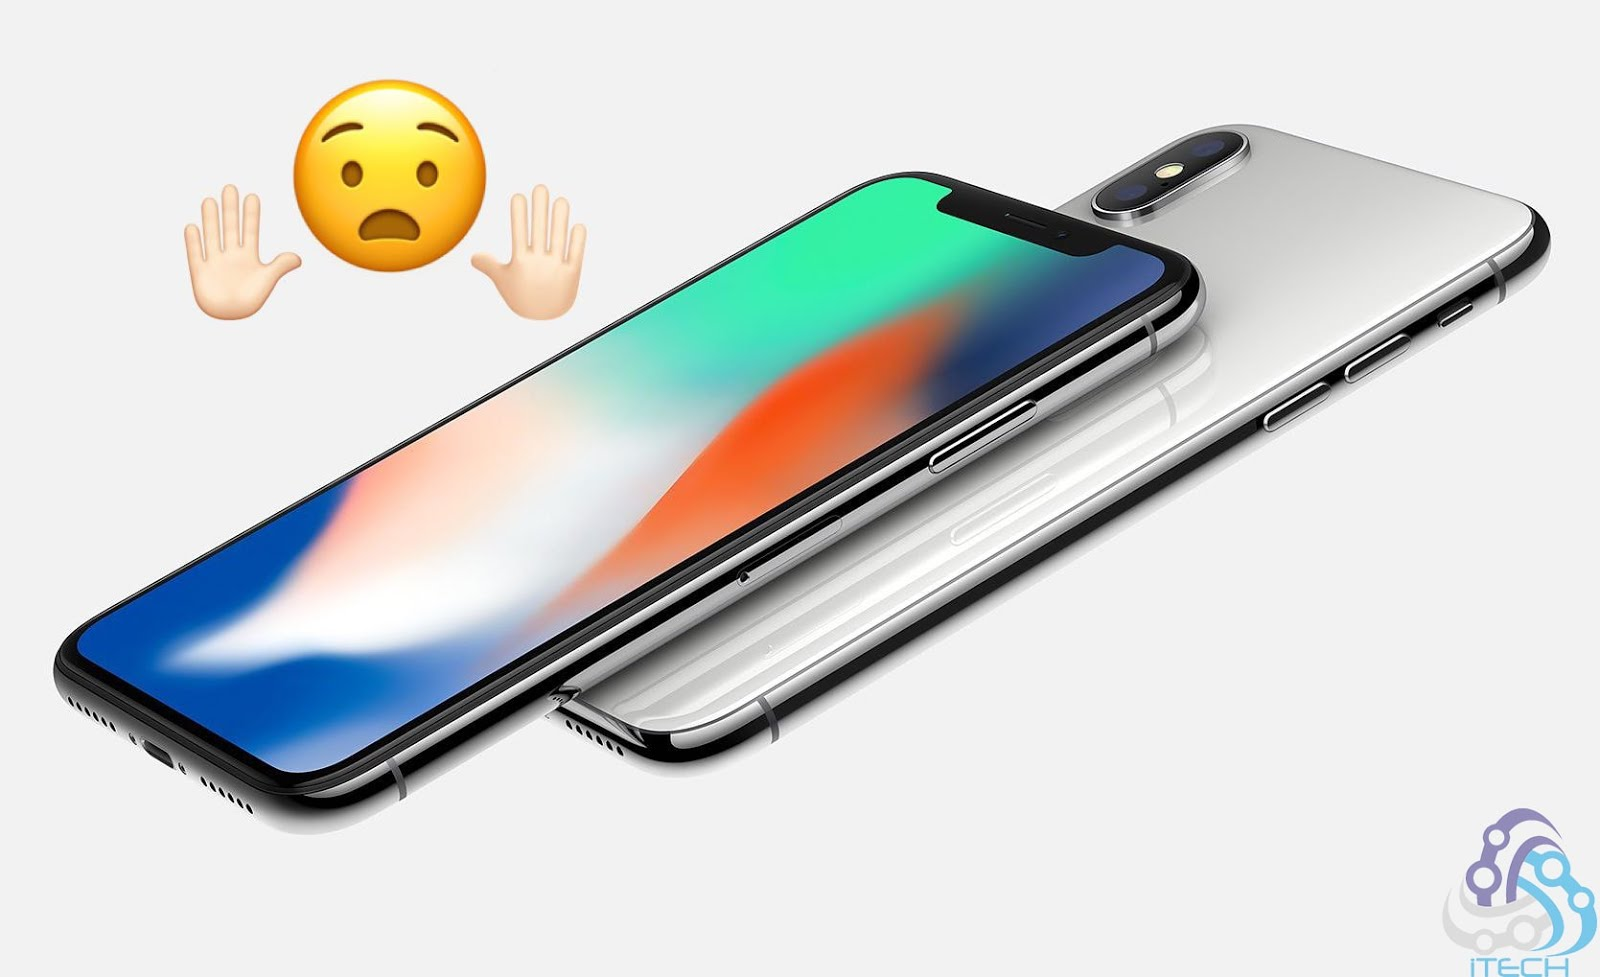 things to know before buying the iPhone X